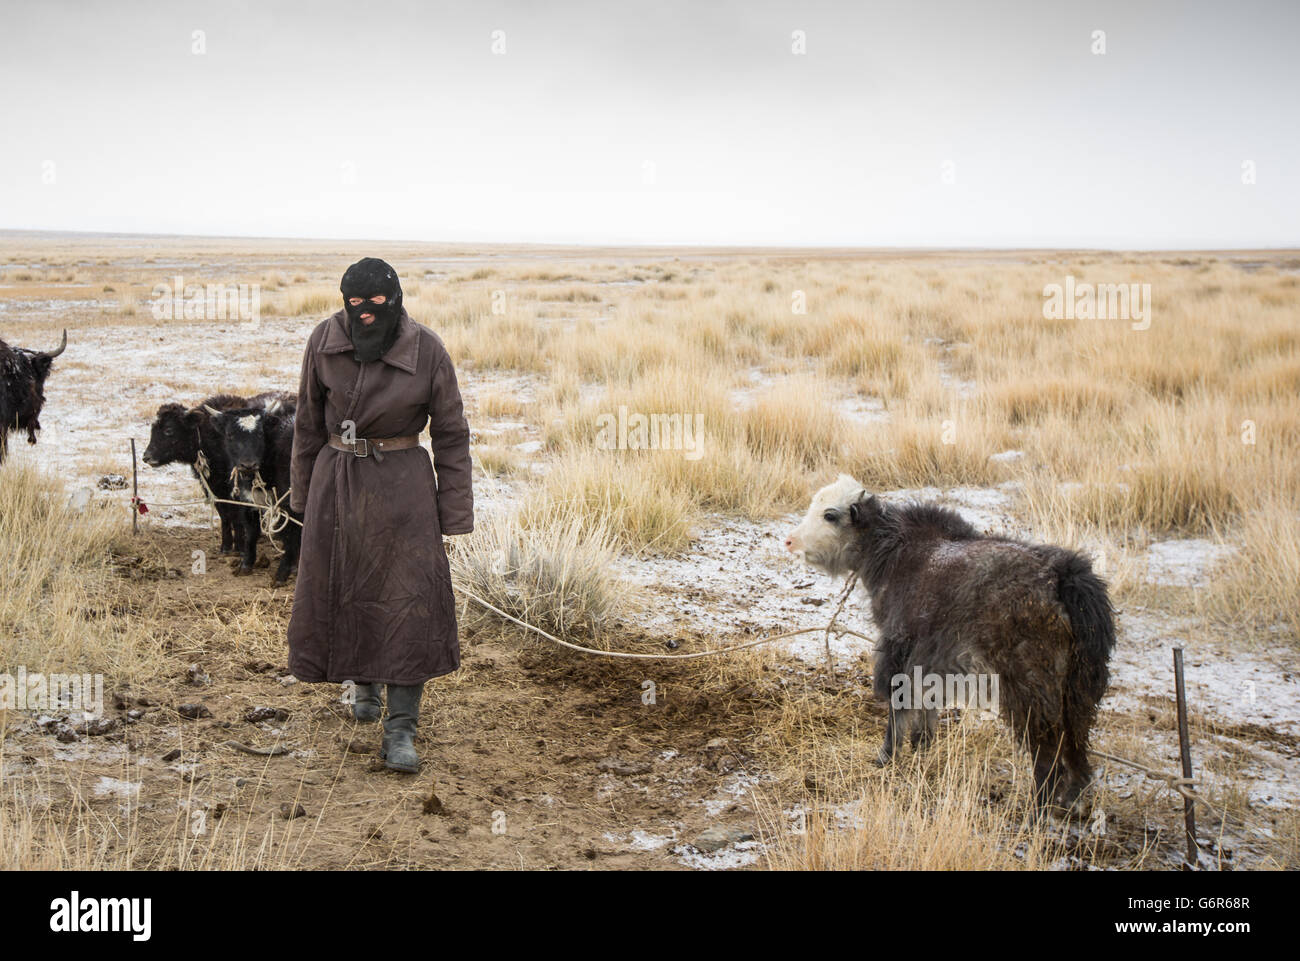 Nomad Man with young yak in a cold morning in Western Mongolia - Stock Image